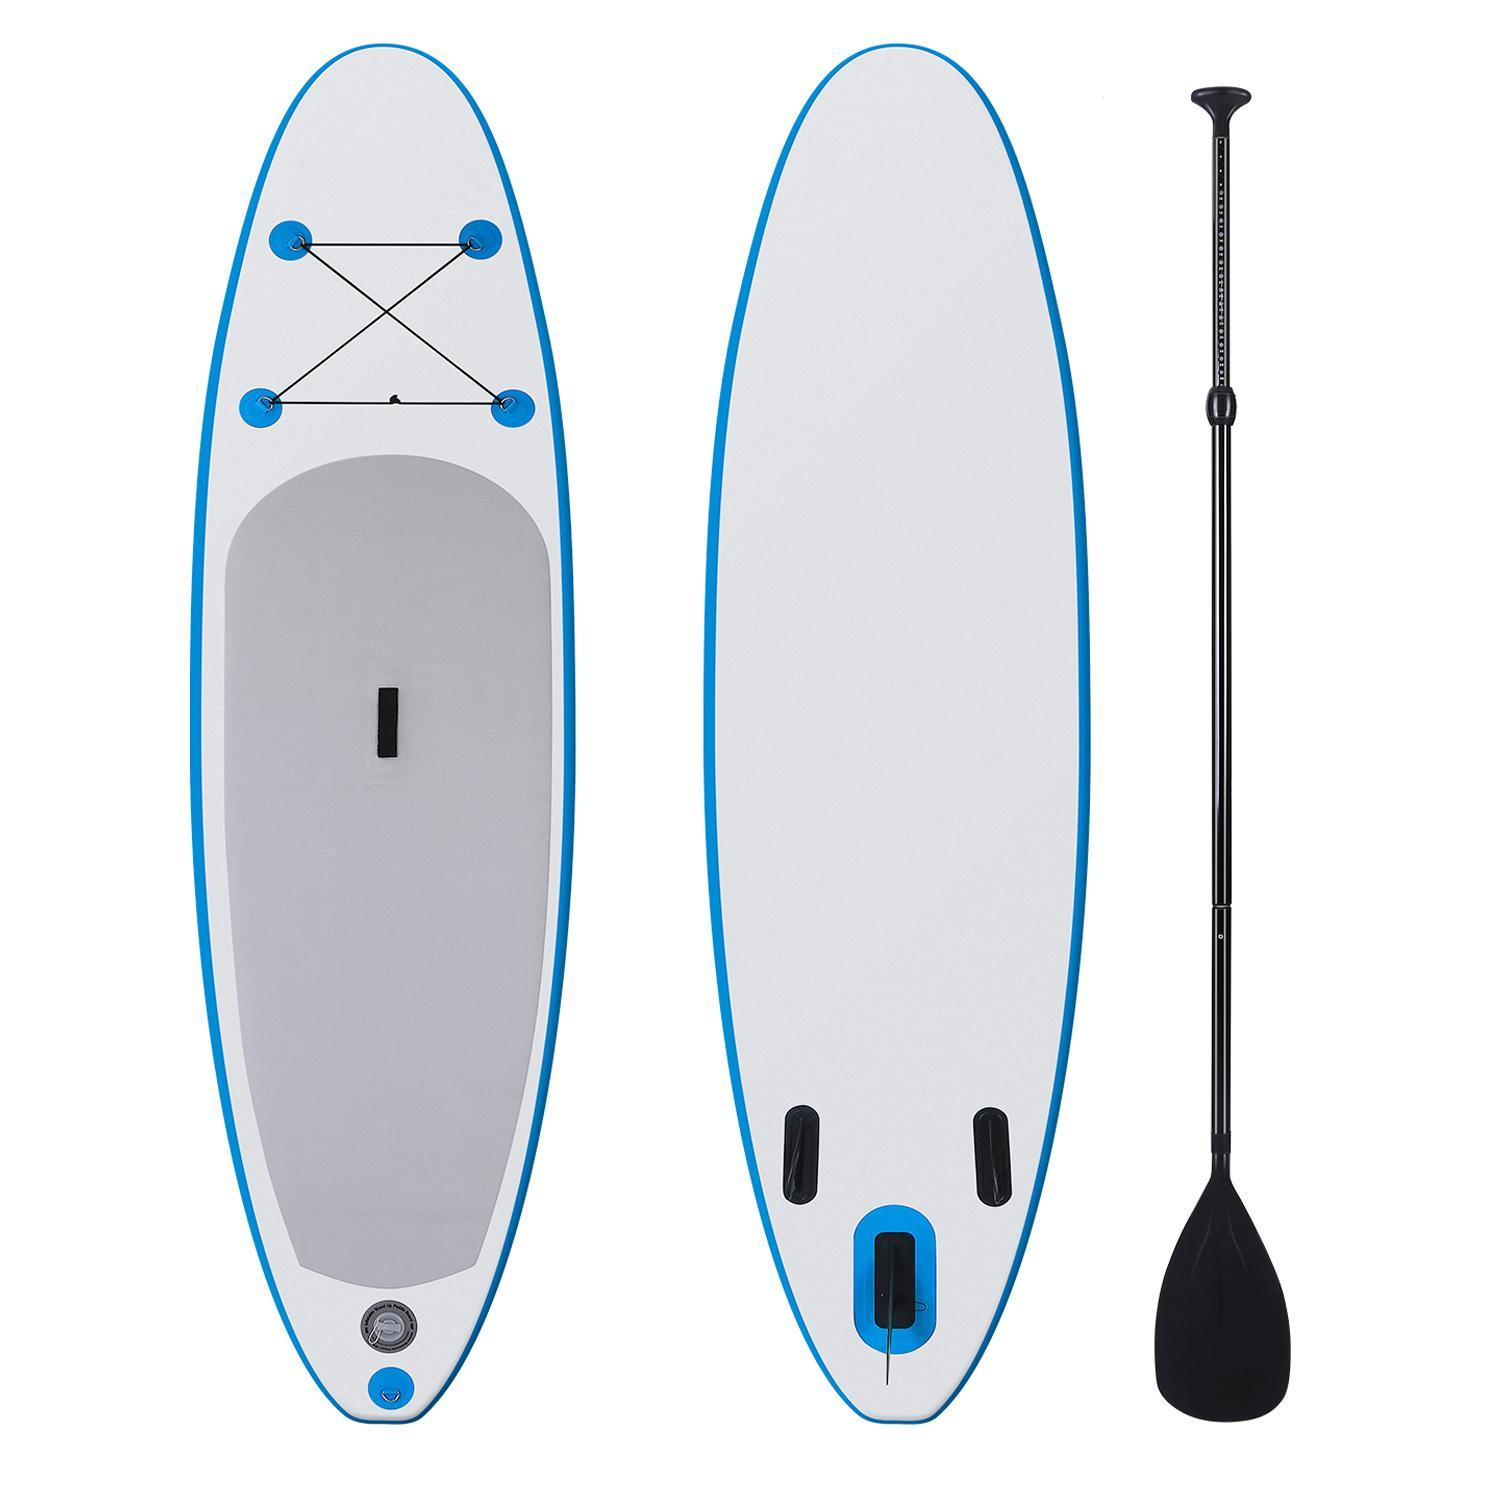 "Hascon 10' 6"" Inflatable SUP Blue Stand Up Paddle Board with Adjustable Paddle, Pump and Backpack"